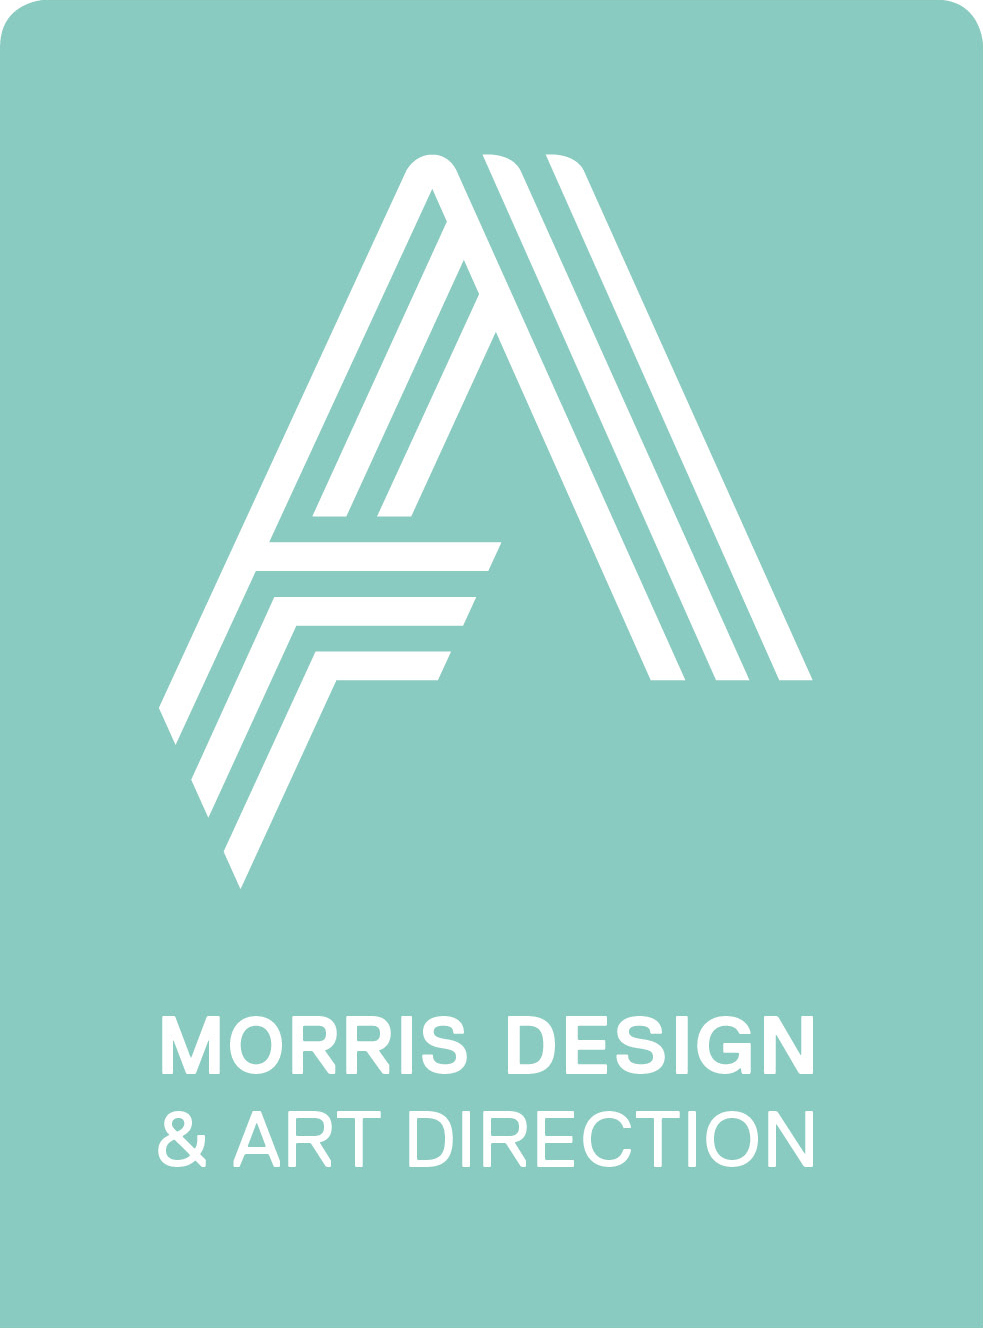 A Morris Design & Art Direction